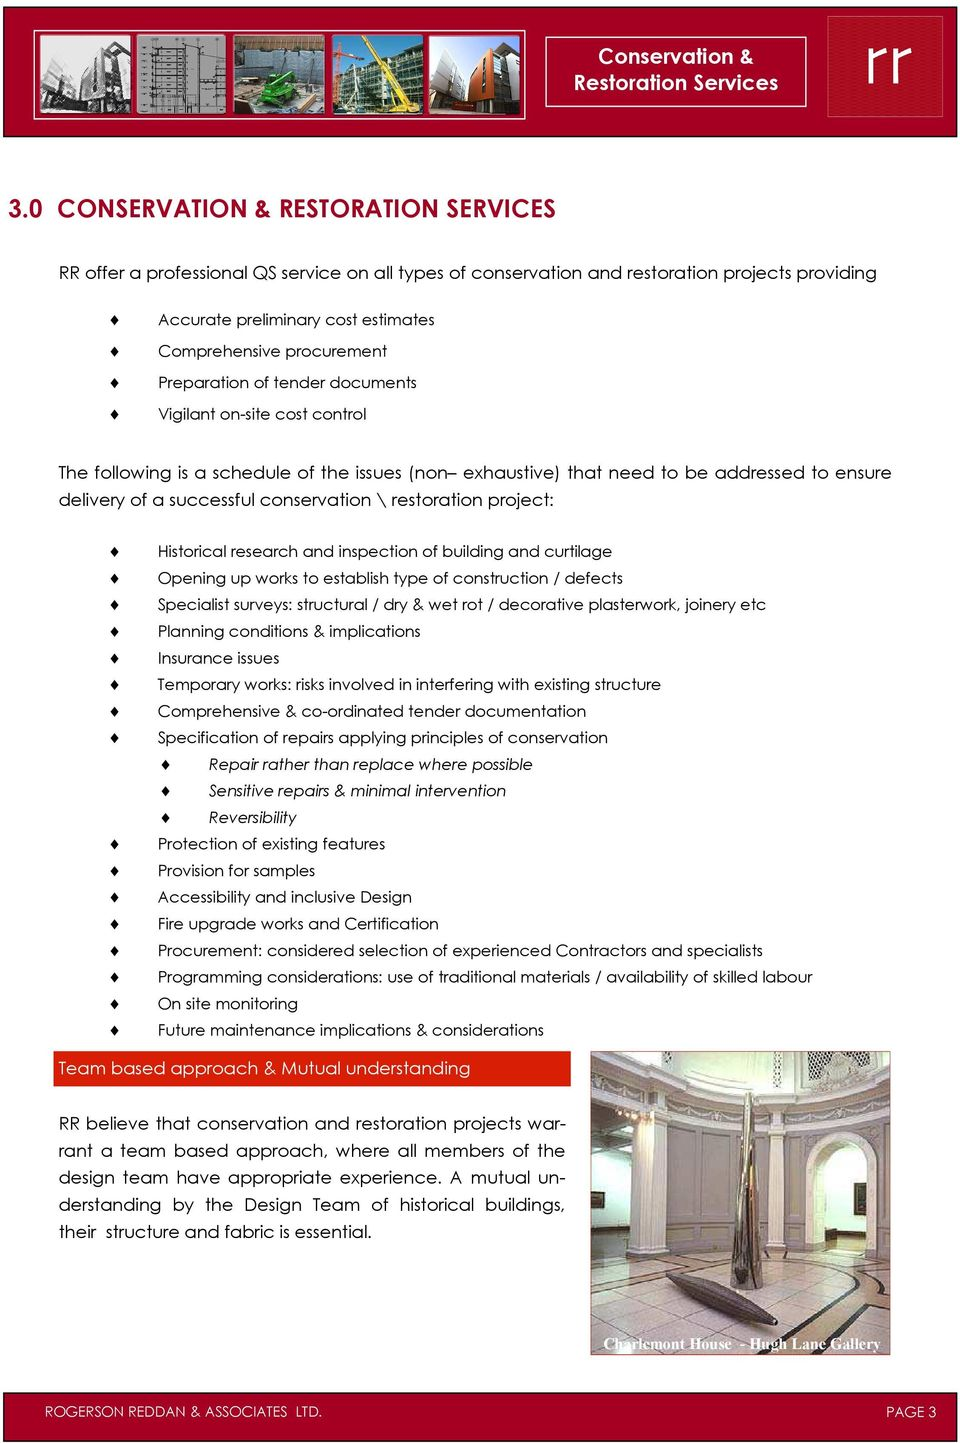 conservation \ restoration project: Historical research and inspection of building and curtilage Opening up works to establish type of construction / defects Specialist surveys: structural / dry &